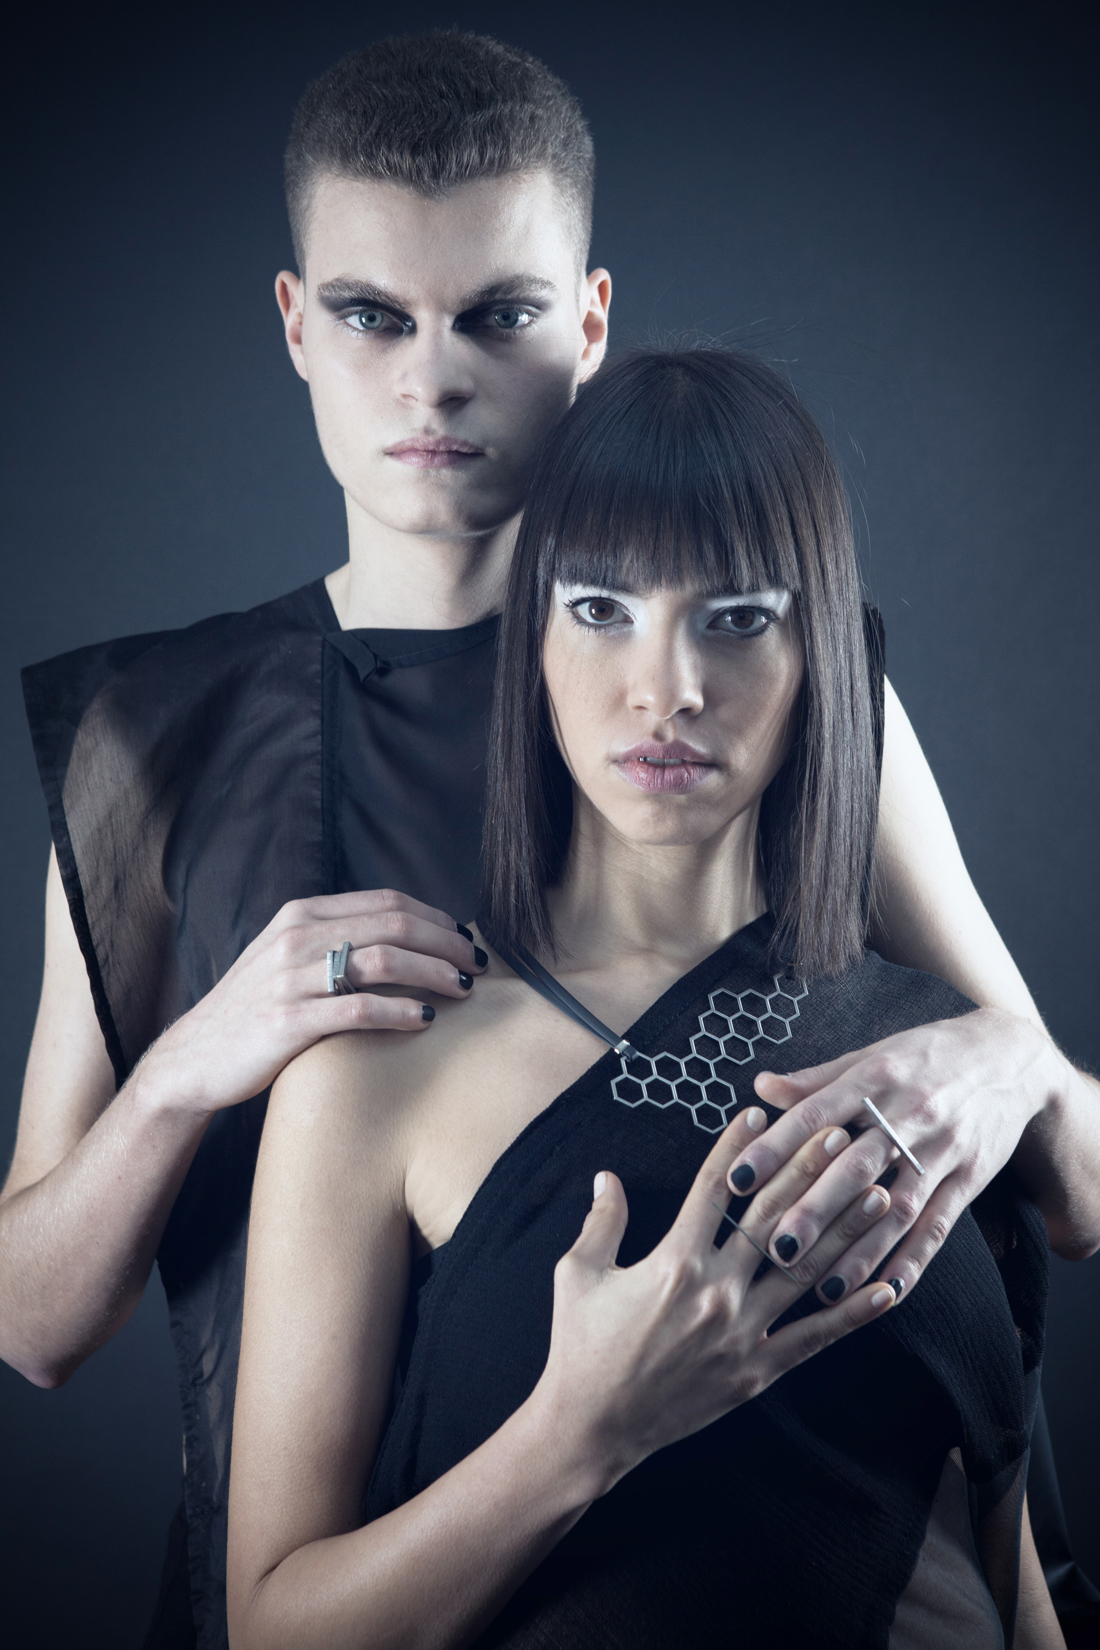 EVCLIDEAN stainless steel unisex jewelry collection